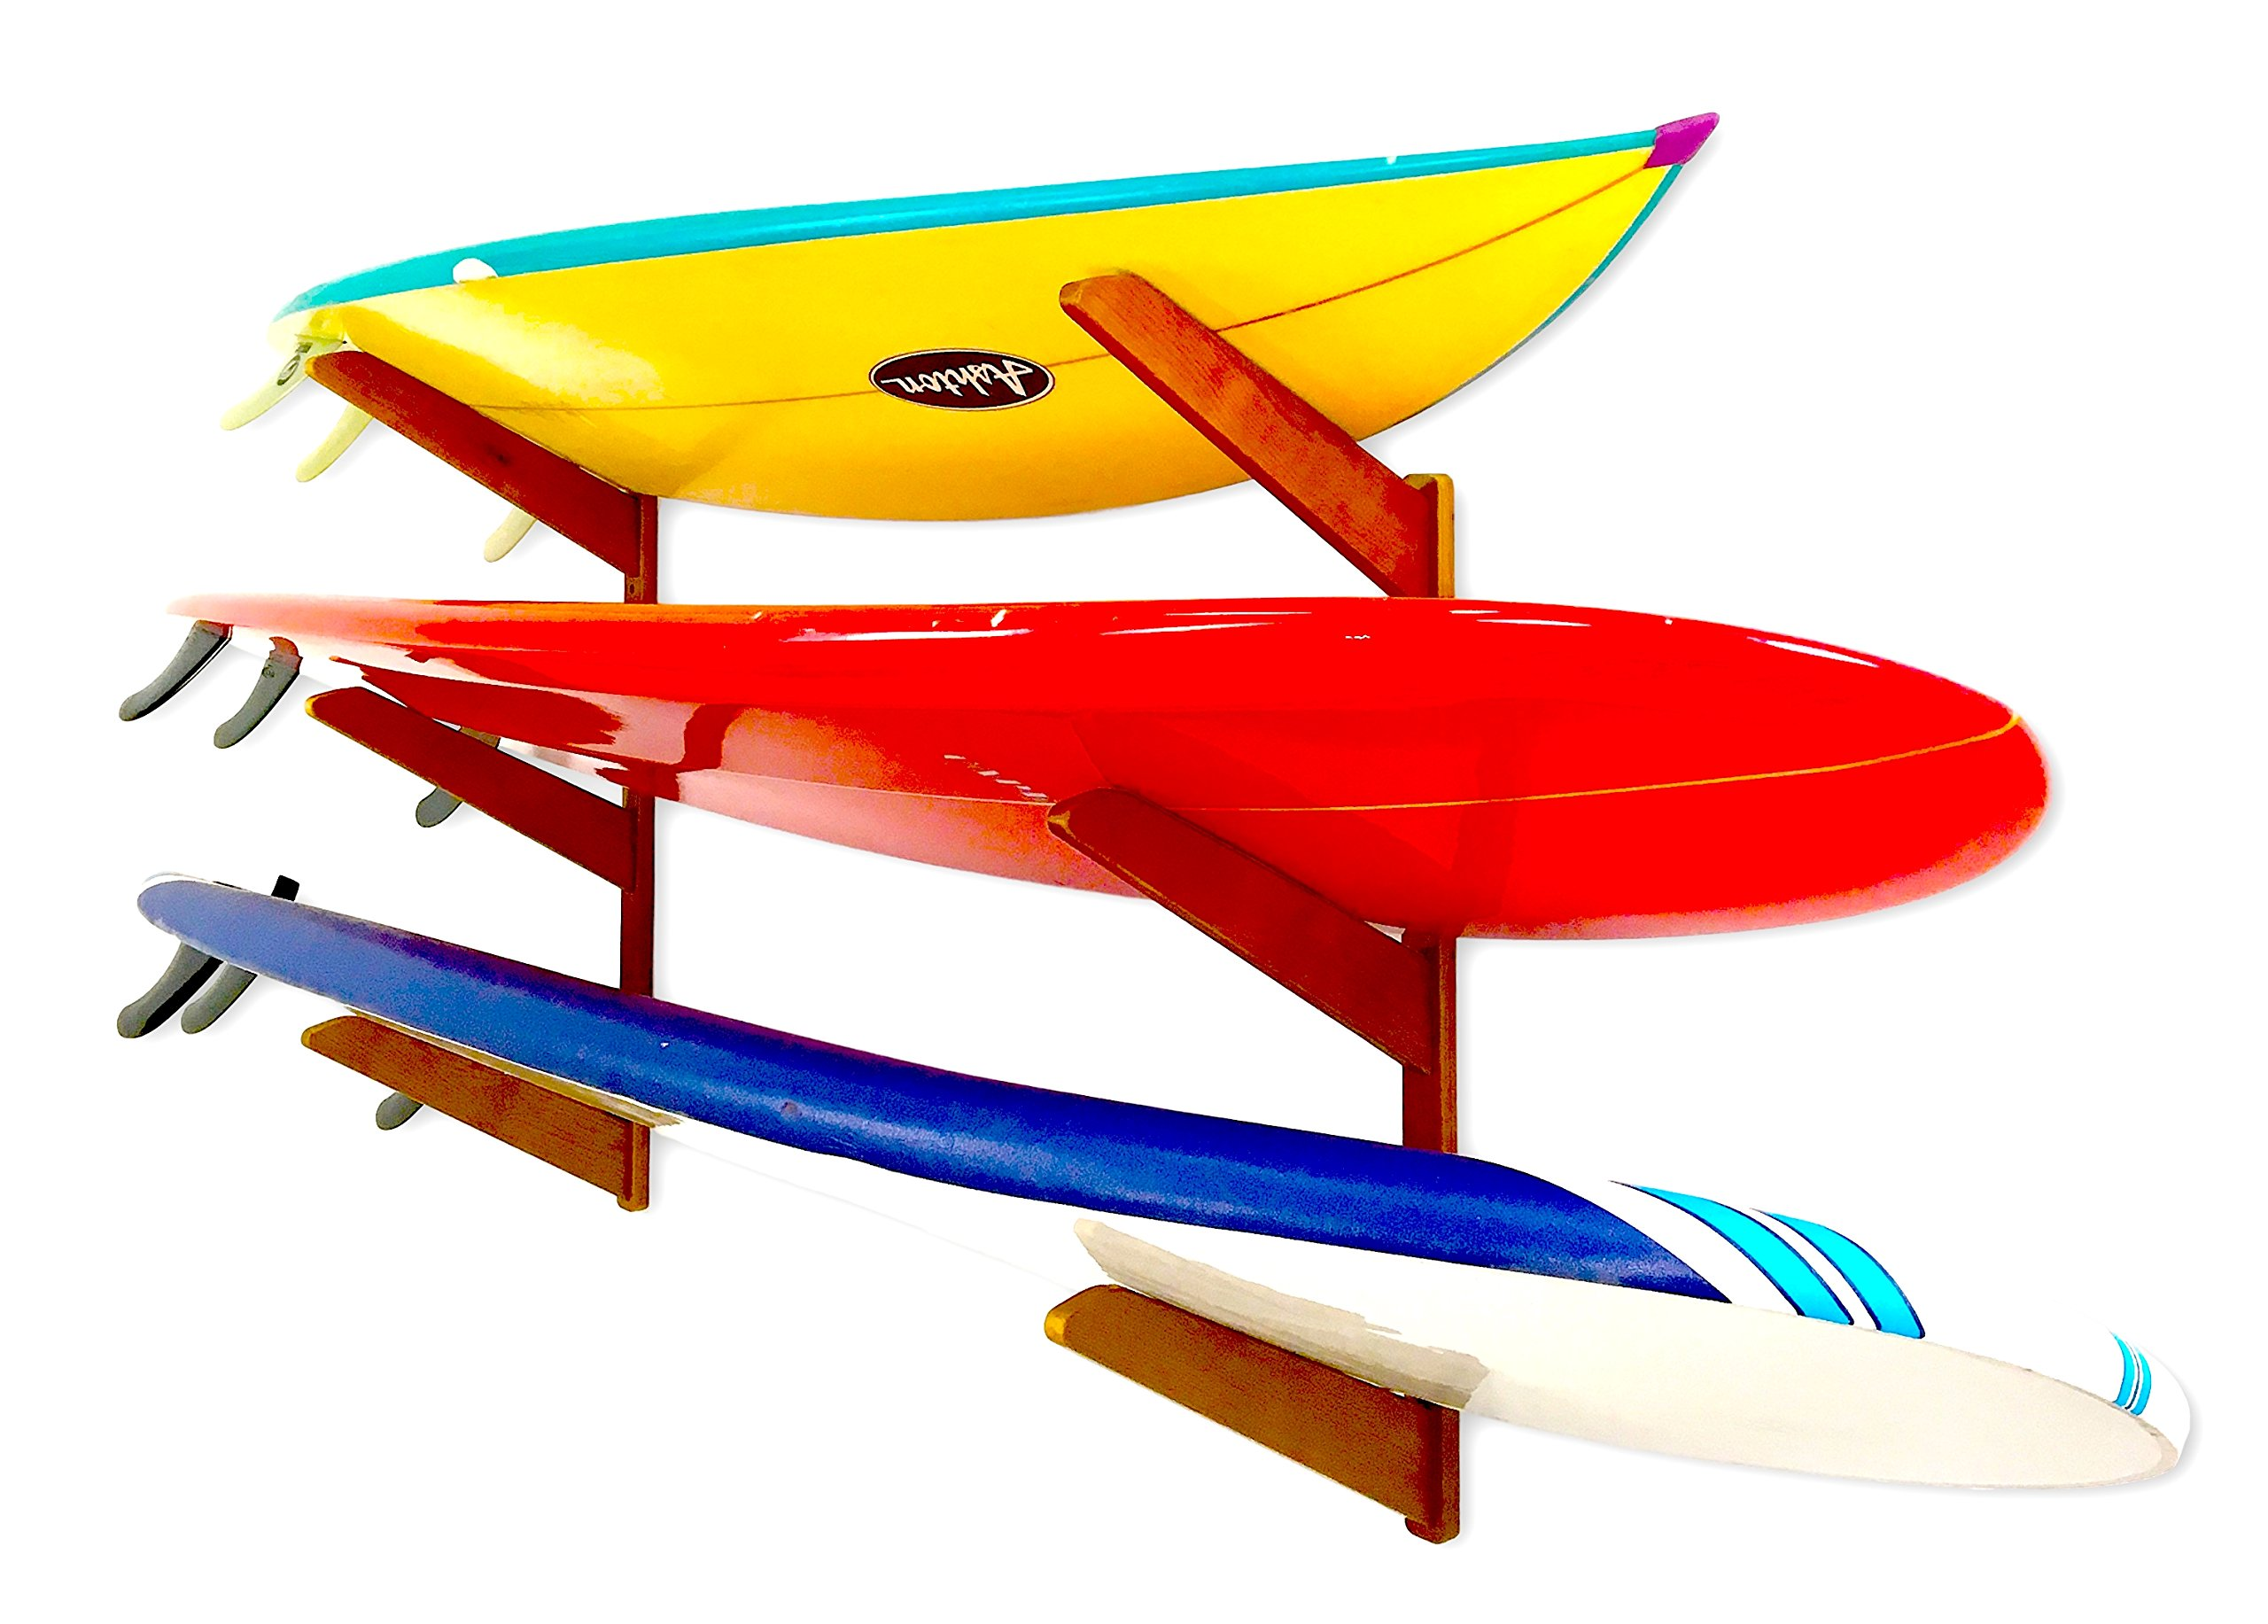 StoreYourBoard Timber Surfboard Wall Rack, Holds 3 Surfboards, Wood Home Storage Mount System, Cherry by StoreYourBoard